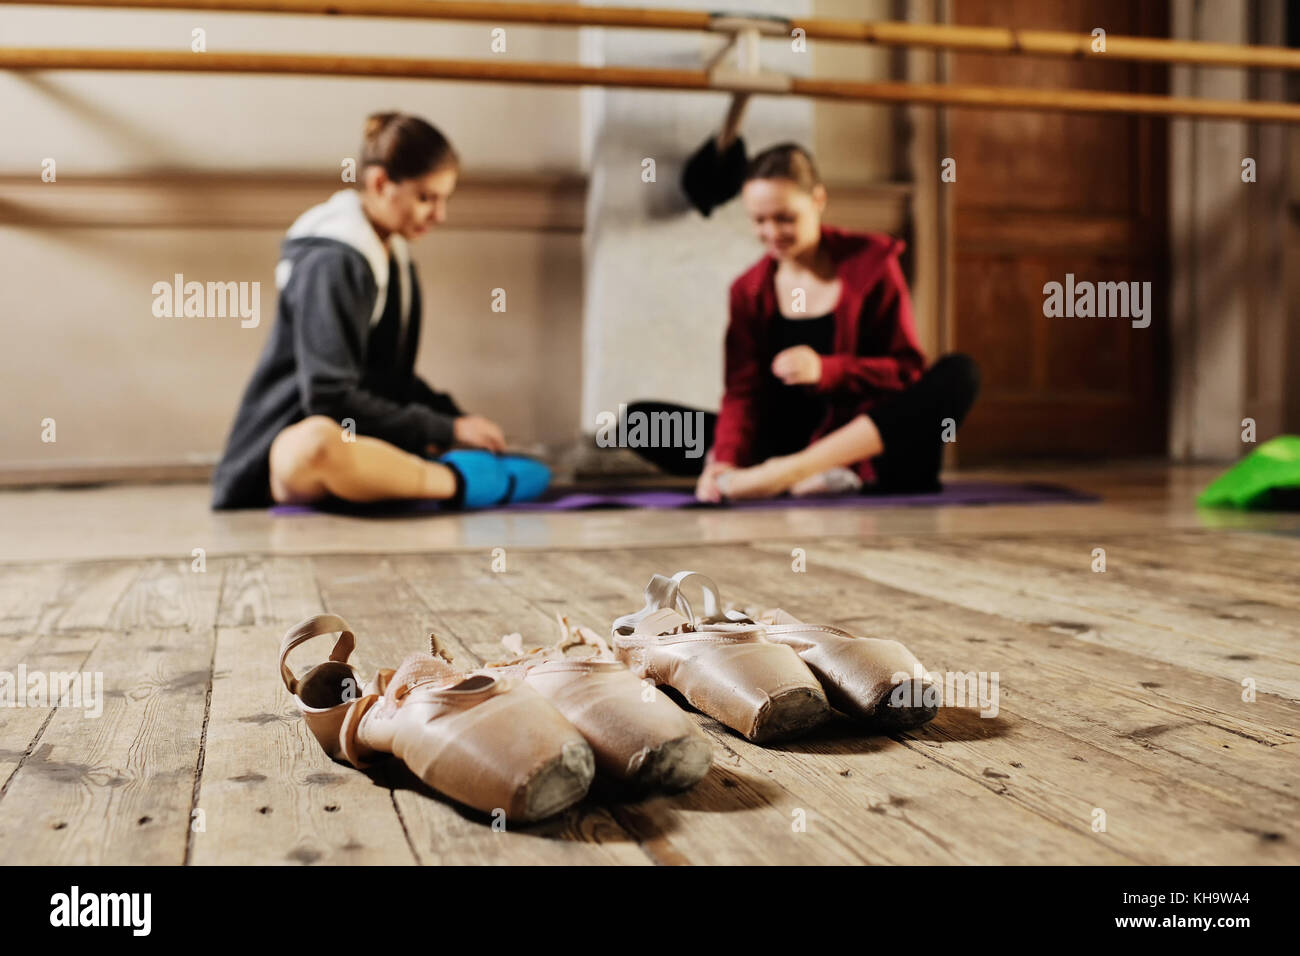 ballerina in rehearsal or training Stock Photo